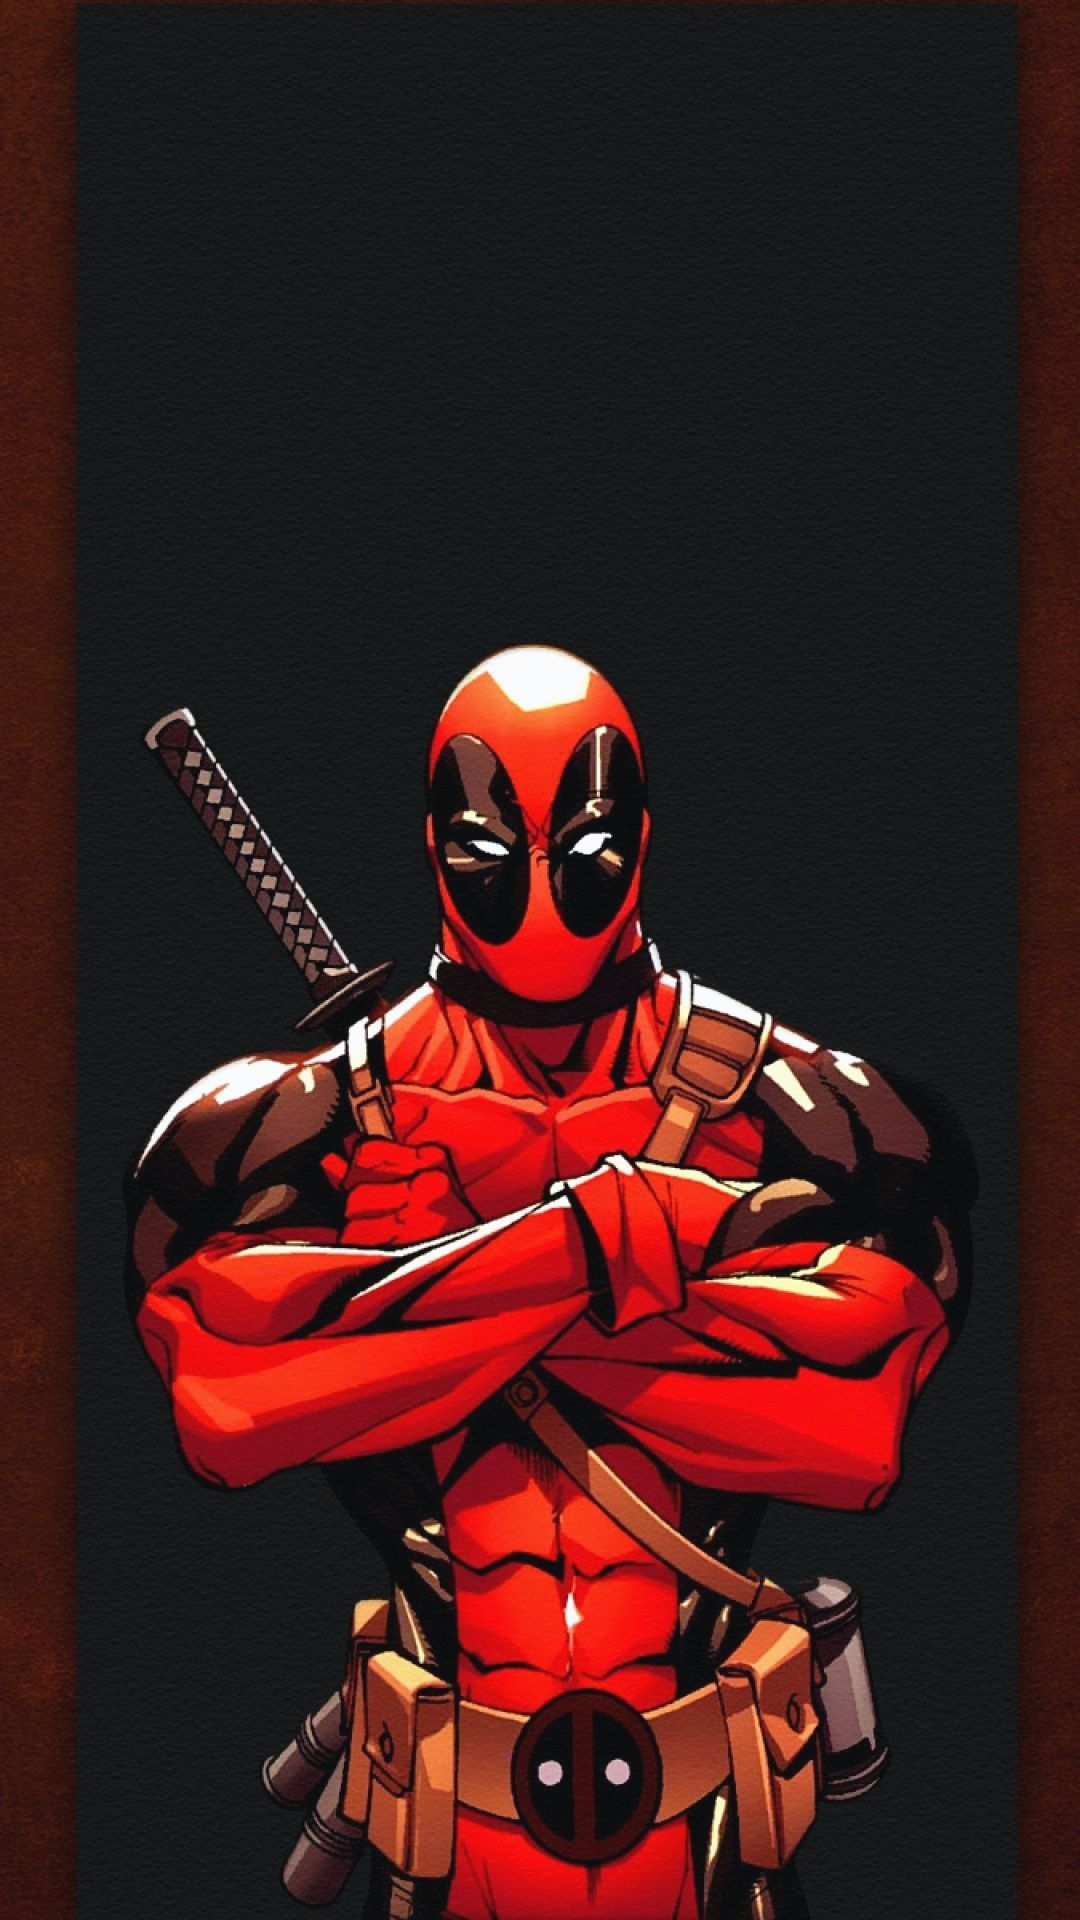 Pin by Jay Tonido on My Saves in 2020 Deadpool